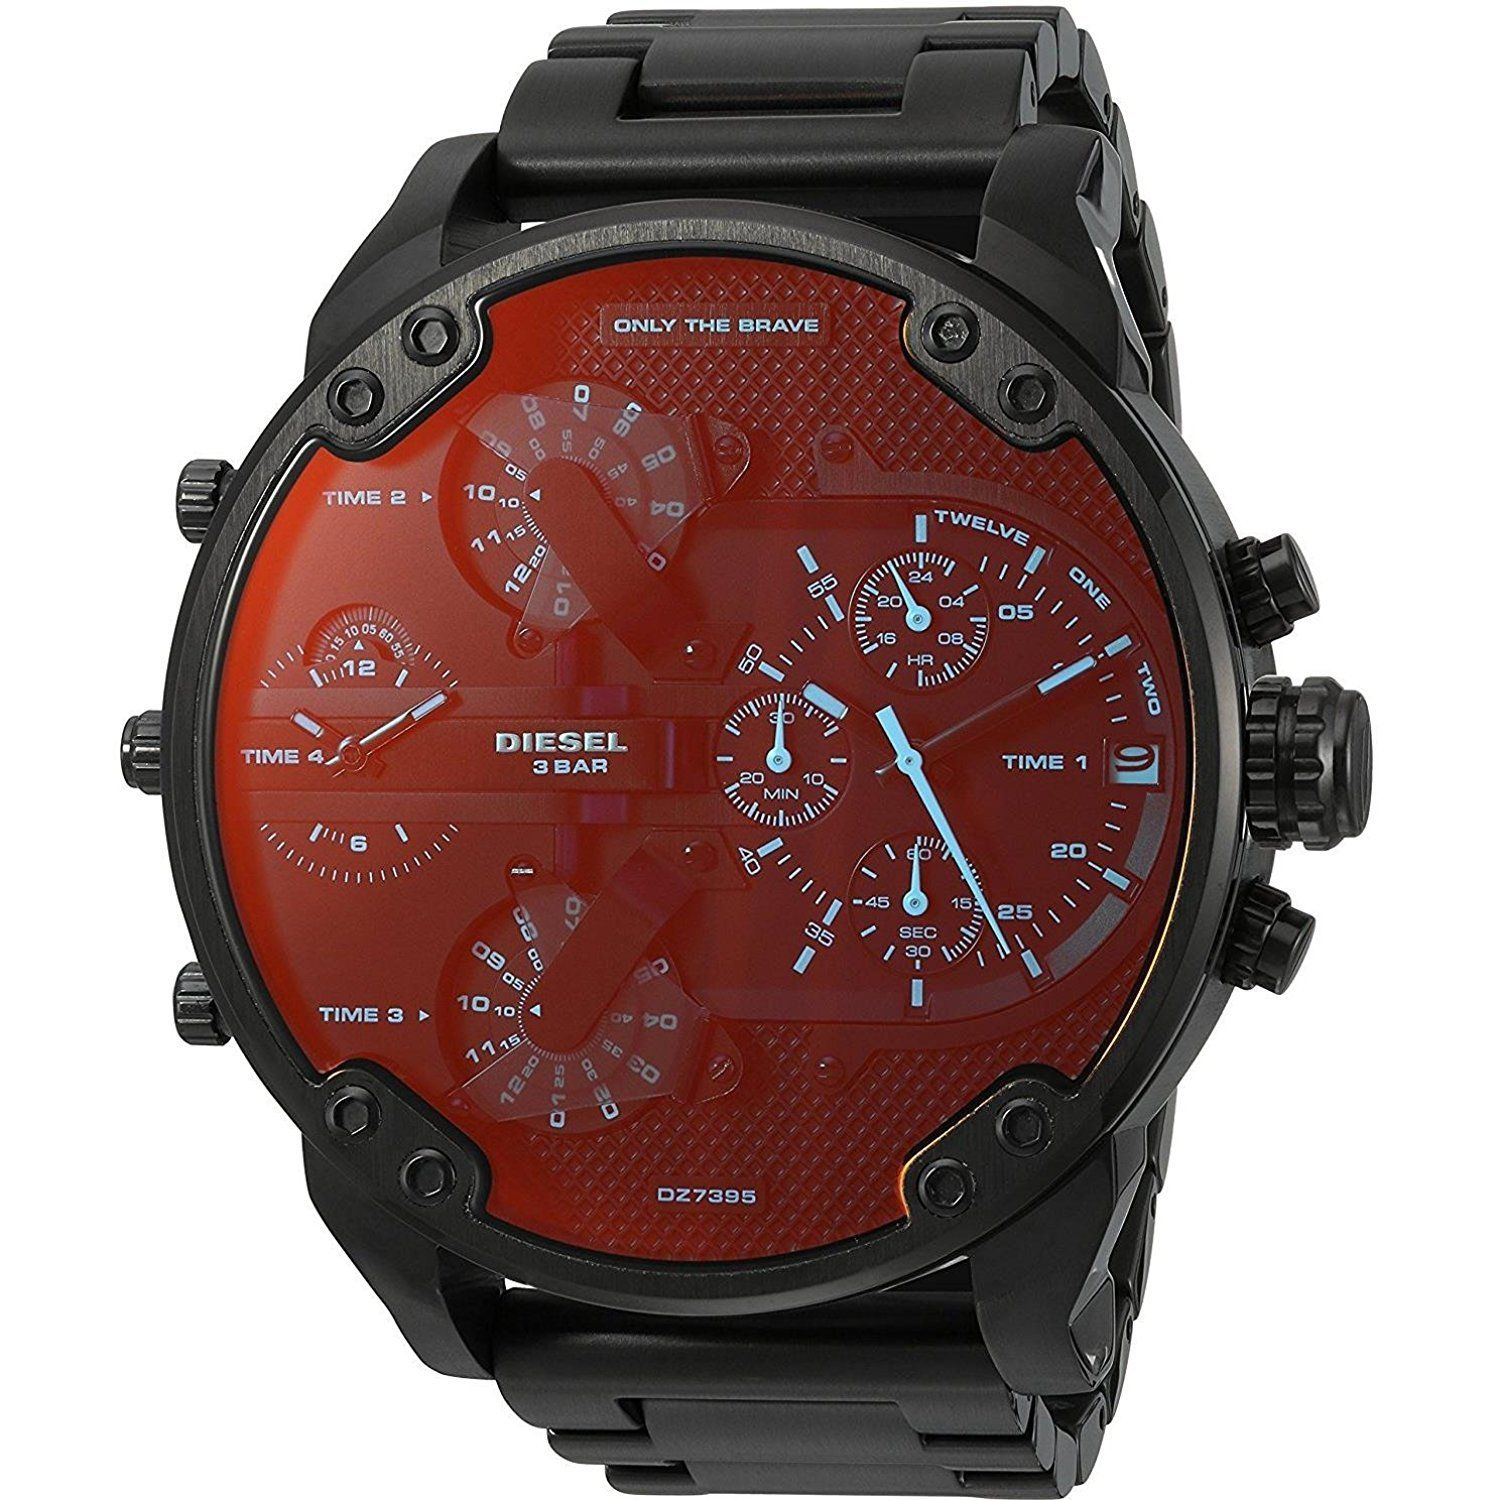 นาฬิกาผู้ชาย Diesel รุ่น DZ7395, Mr. Daddy 2.0 Black Chronograph Stainless Men's Watch